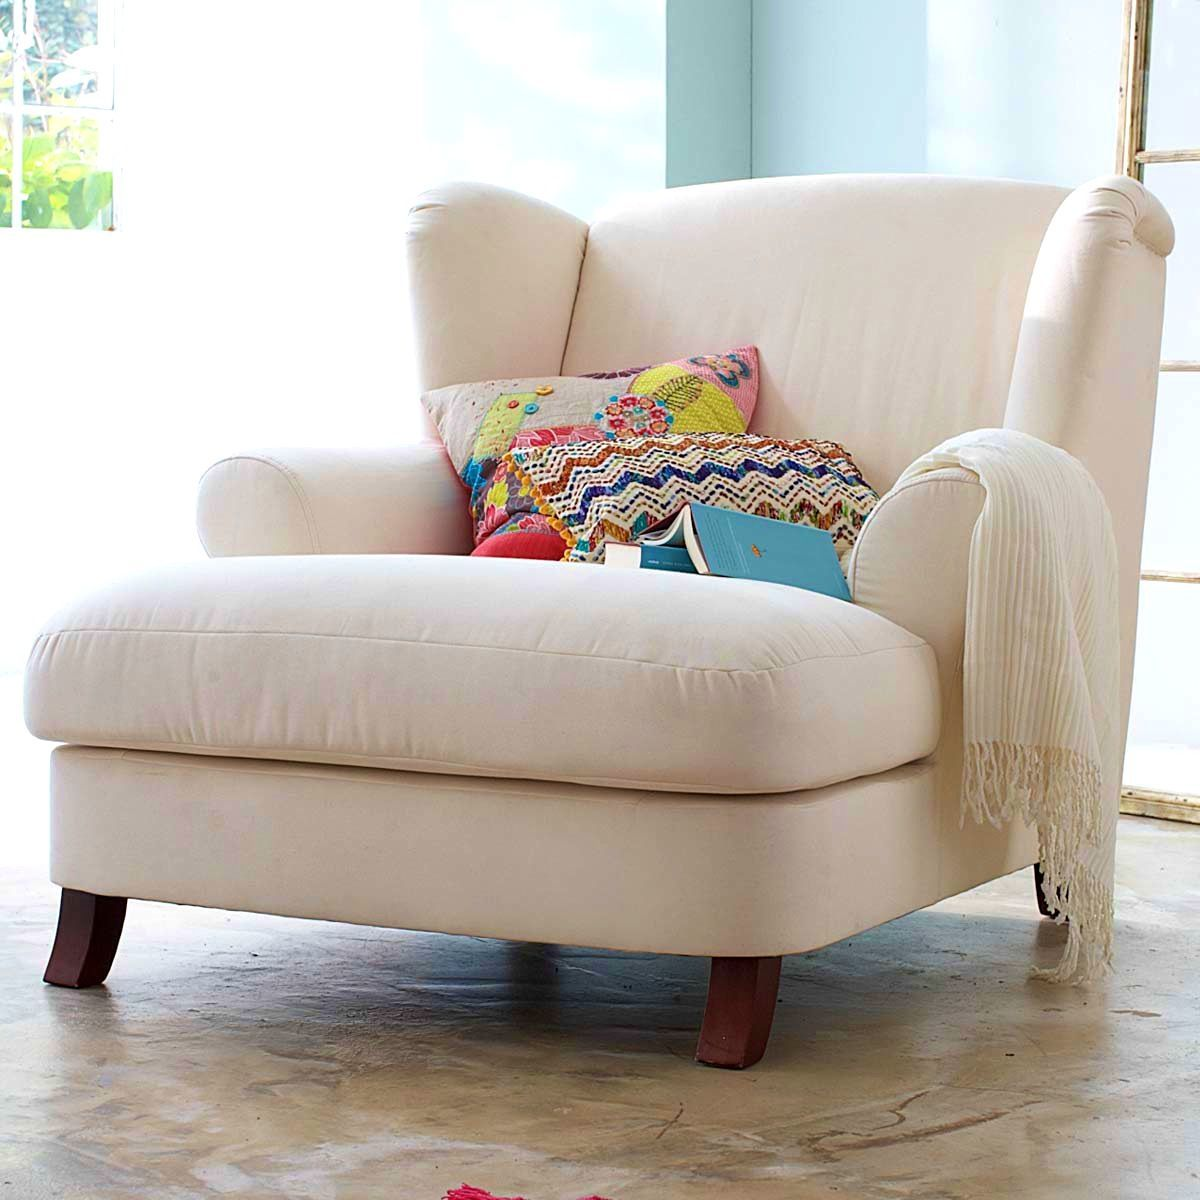 Bedroomsweet images about reading chair chairs comfy for classroom acdfbfcfdf kids with ottoman big most small australia teen oversized super bedroom